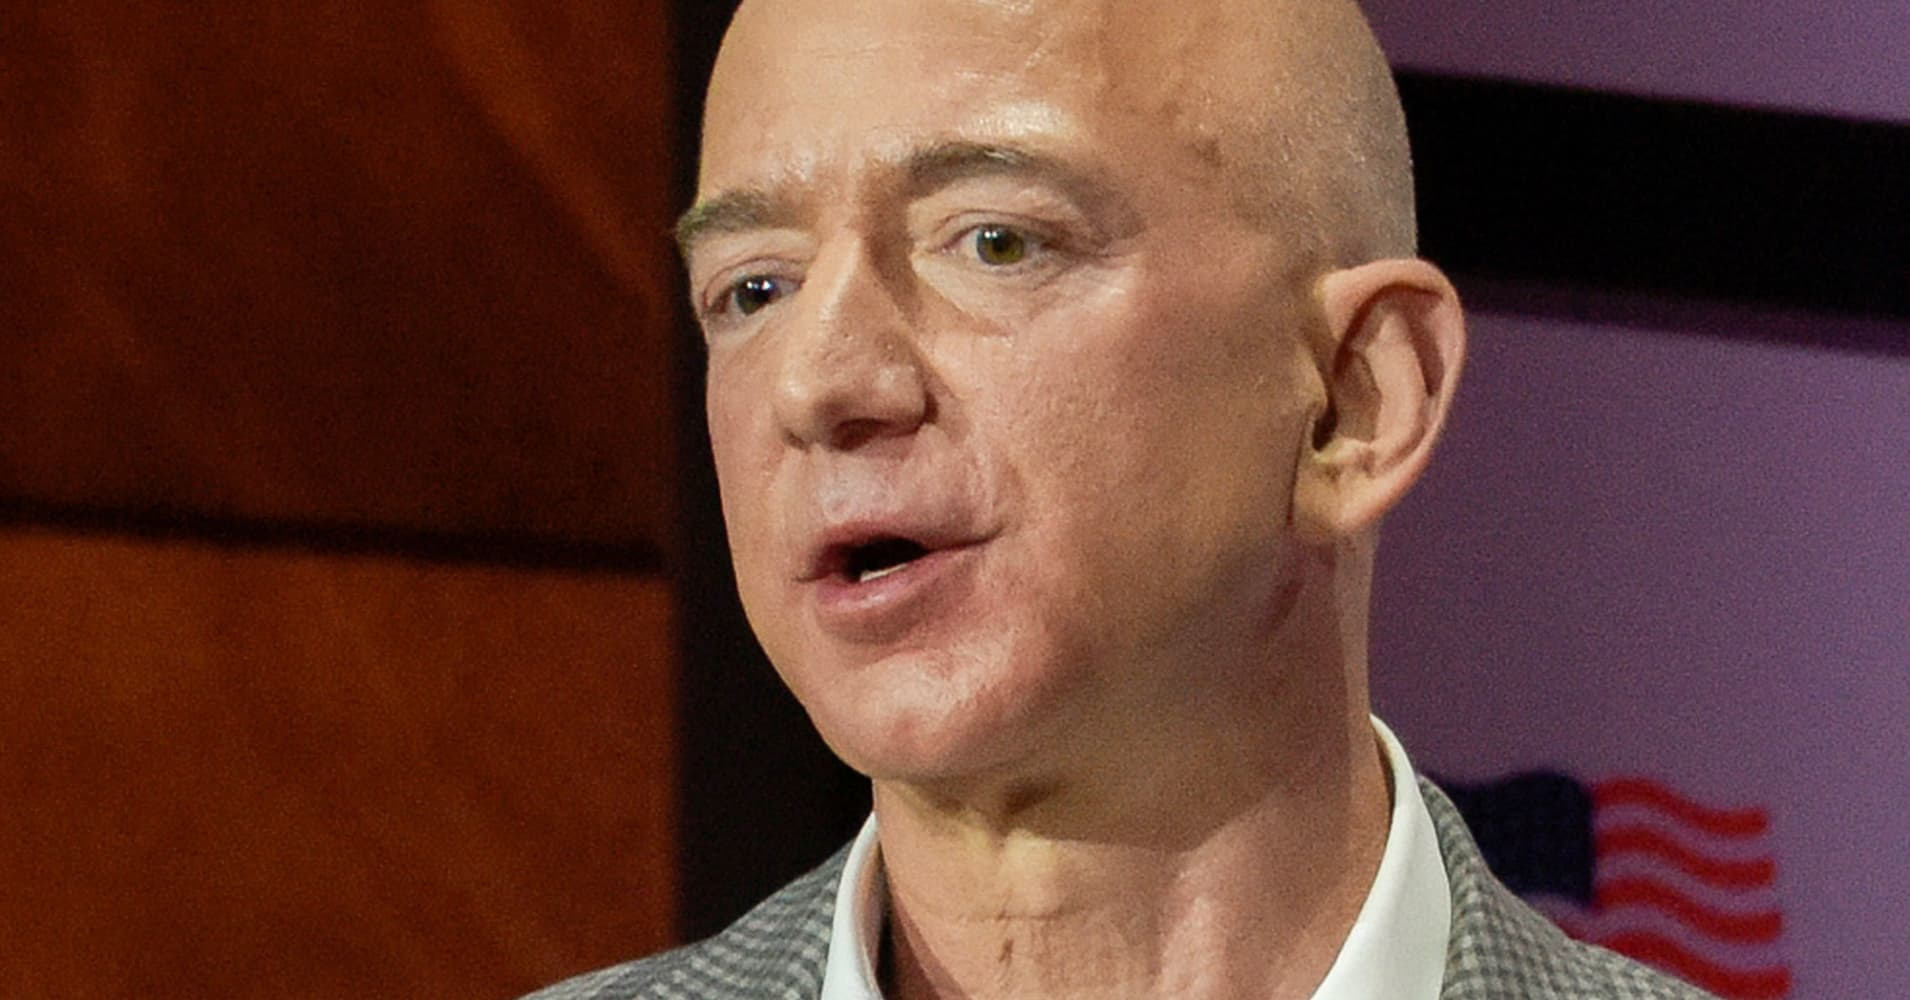 Amazon takes another step into the medical space by accepting pre-tax health spending accounts